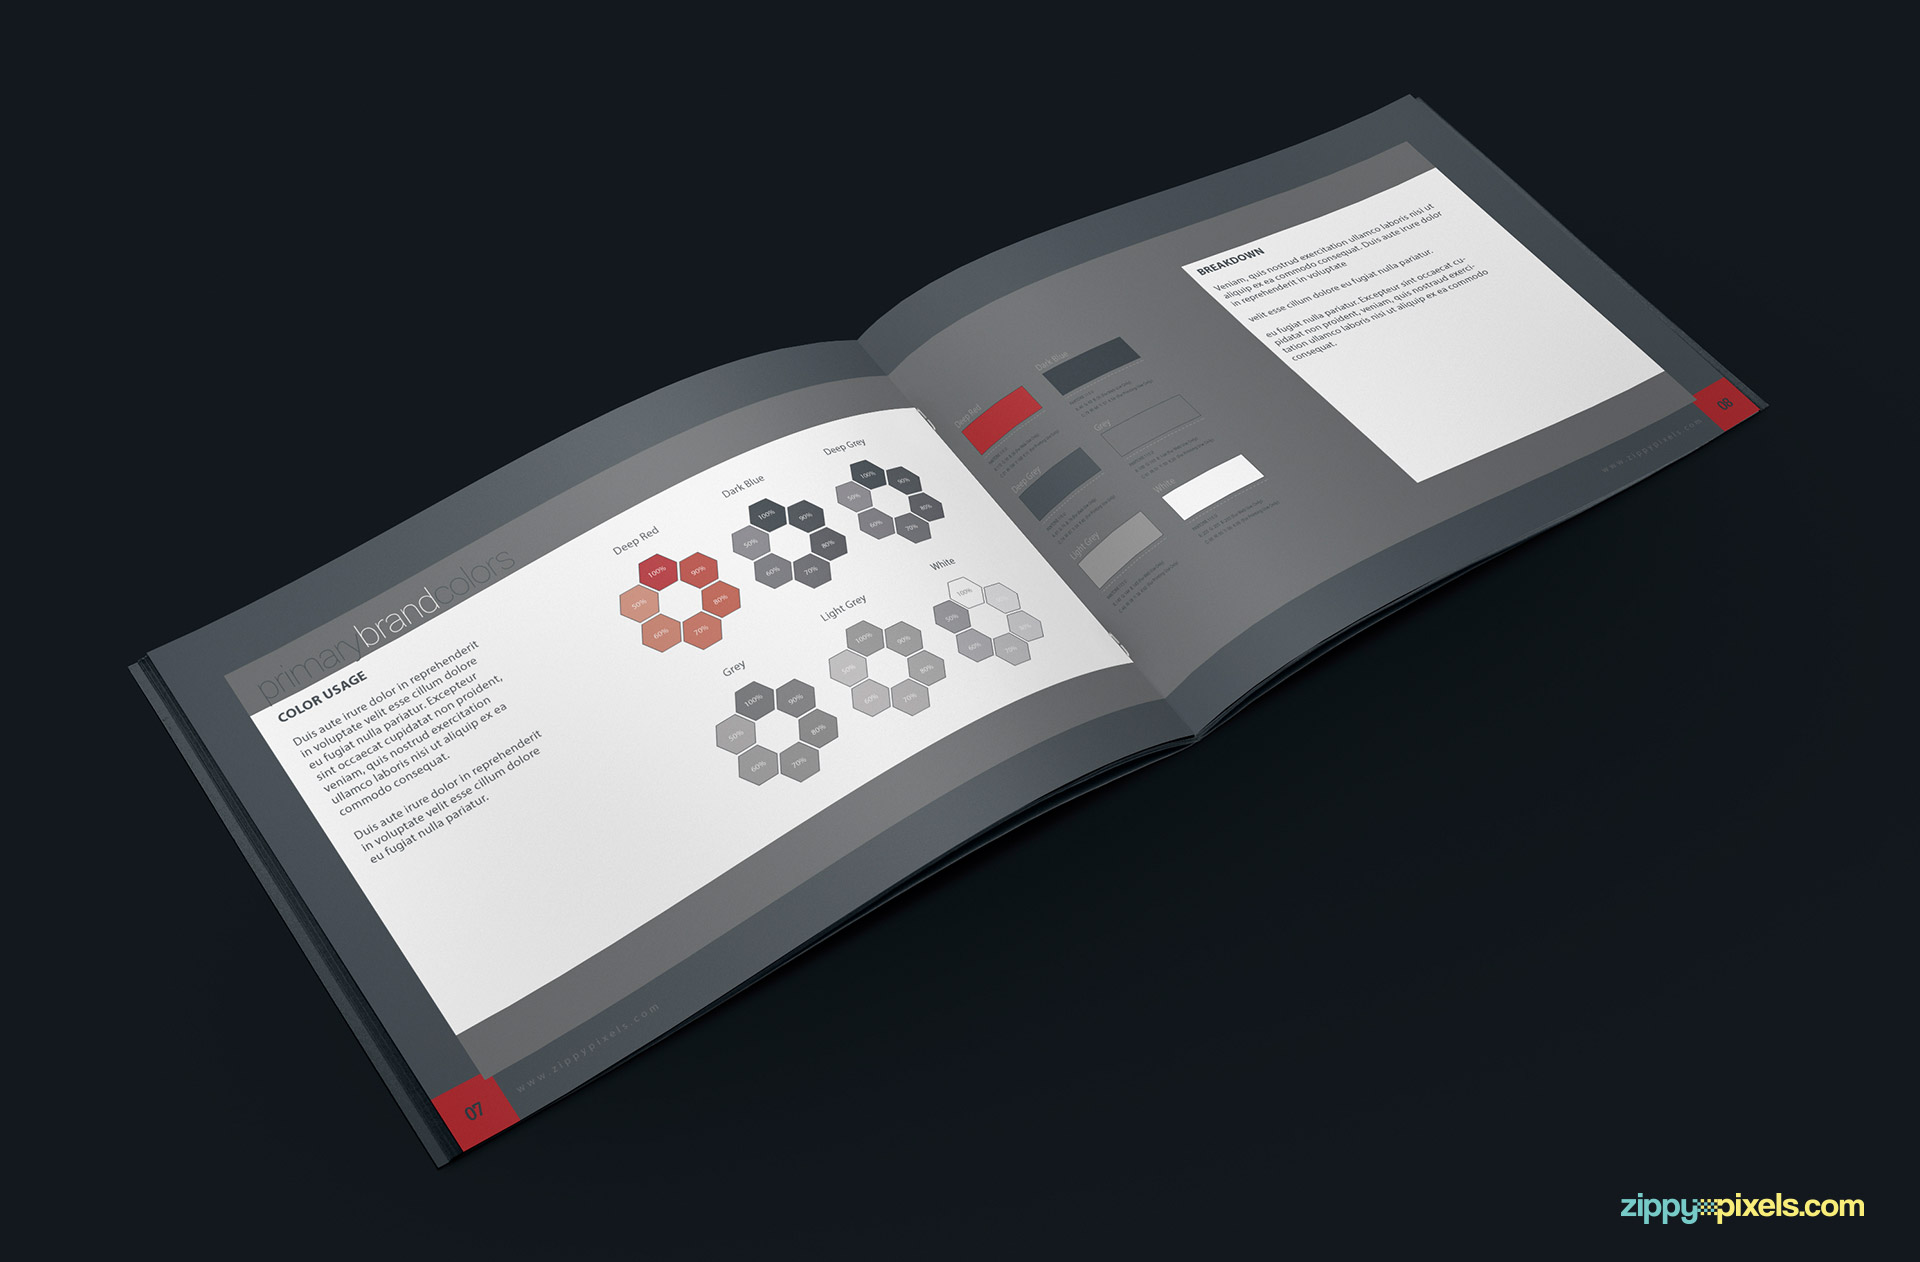 Brand book template for corporate guidelines zippypixels for Free brand guidelines template